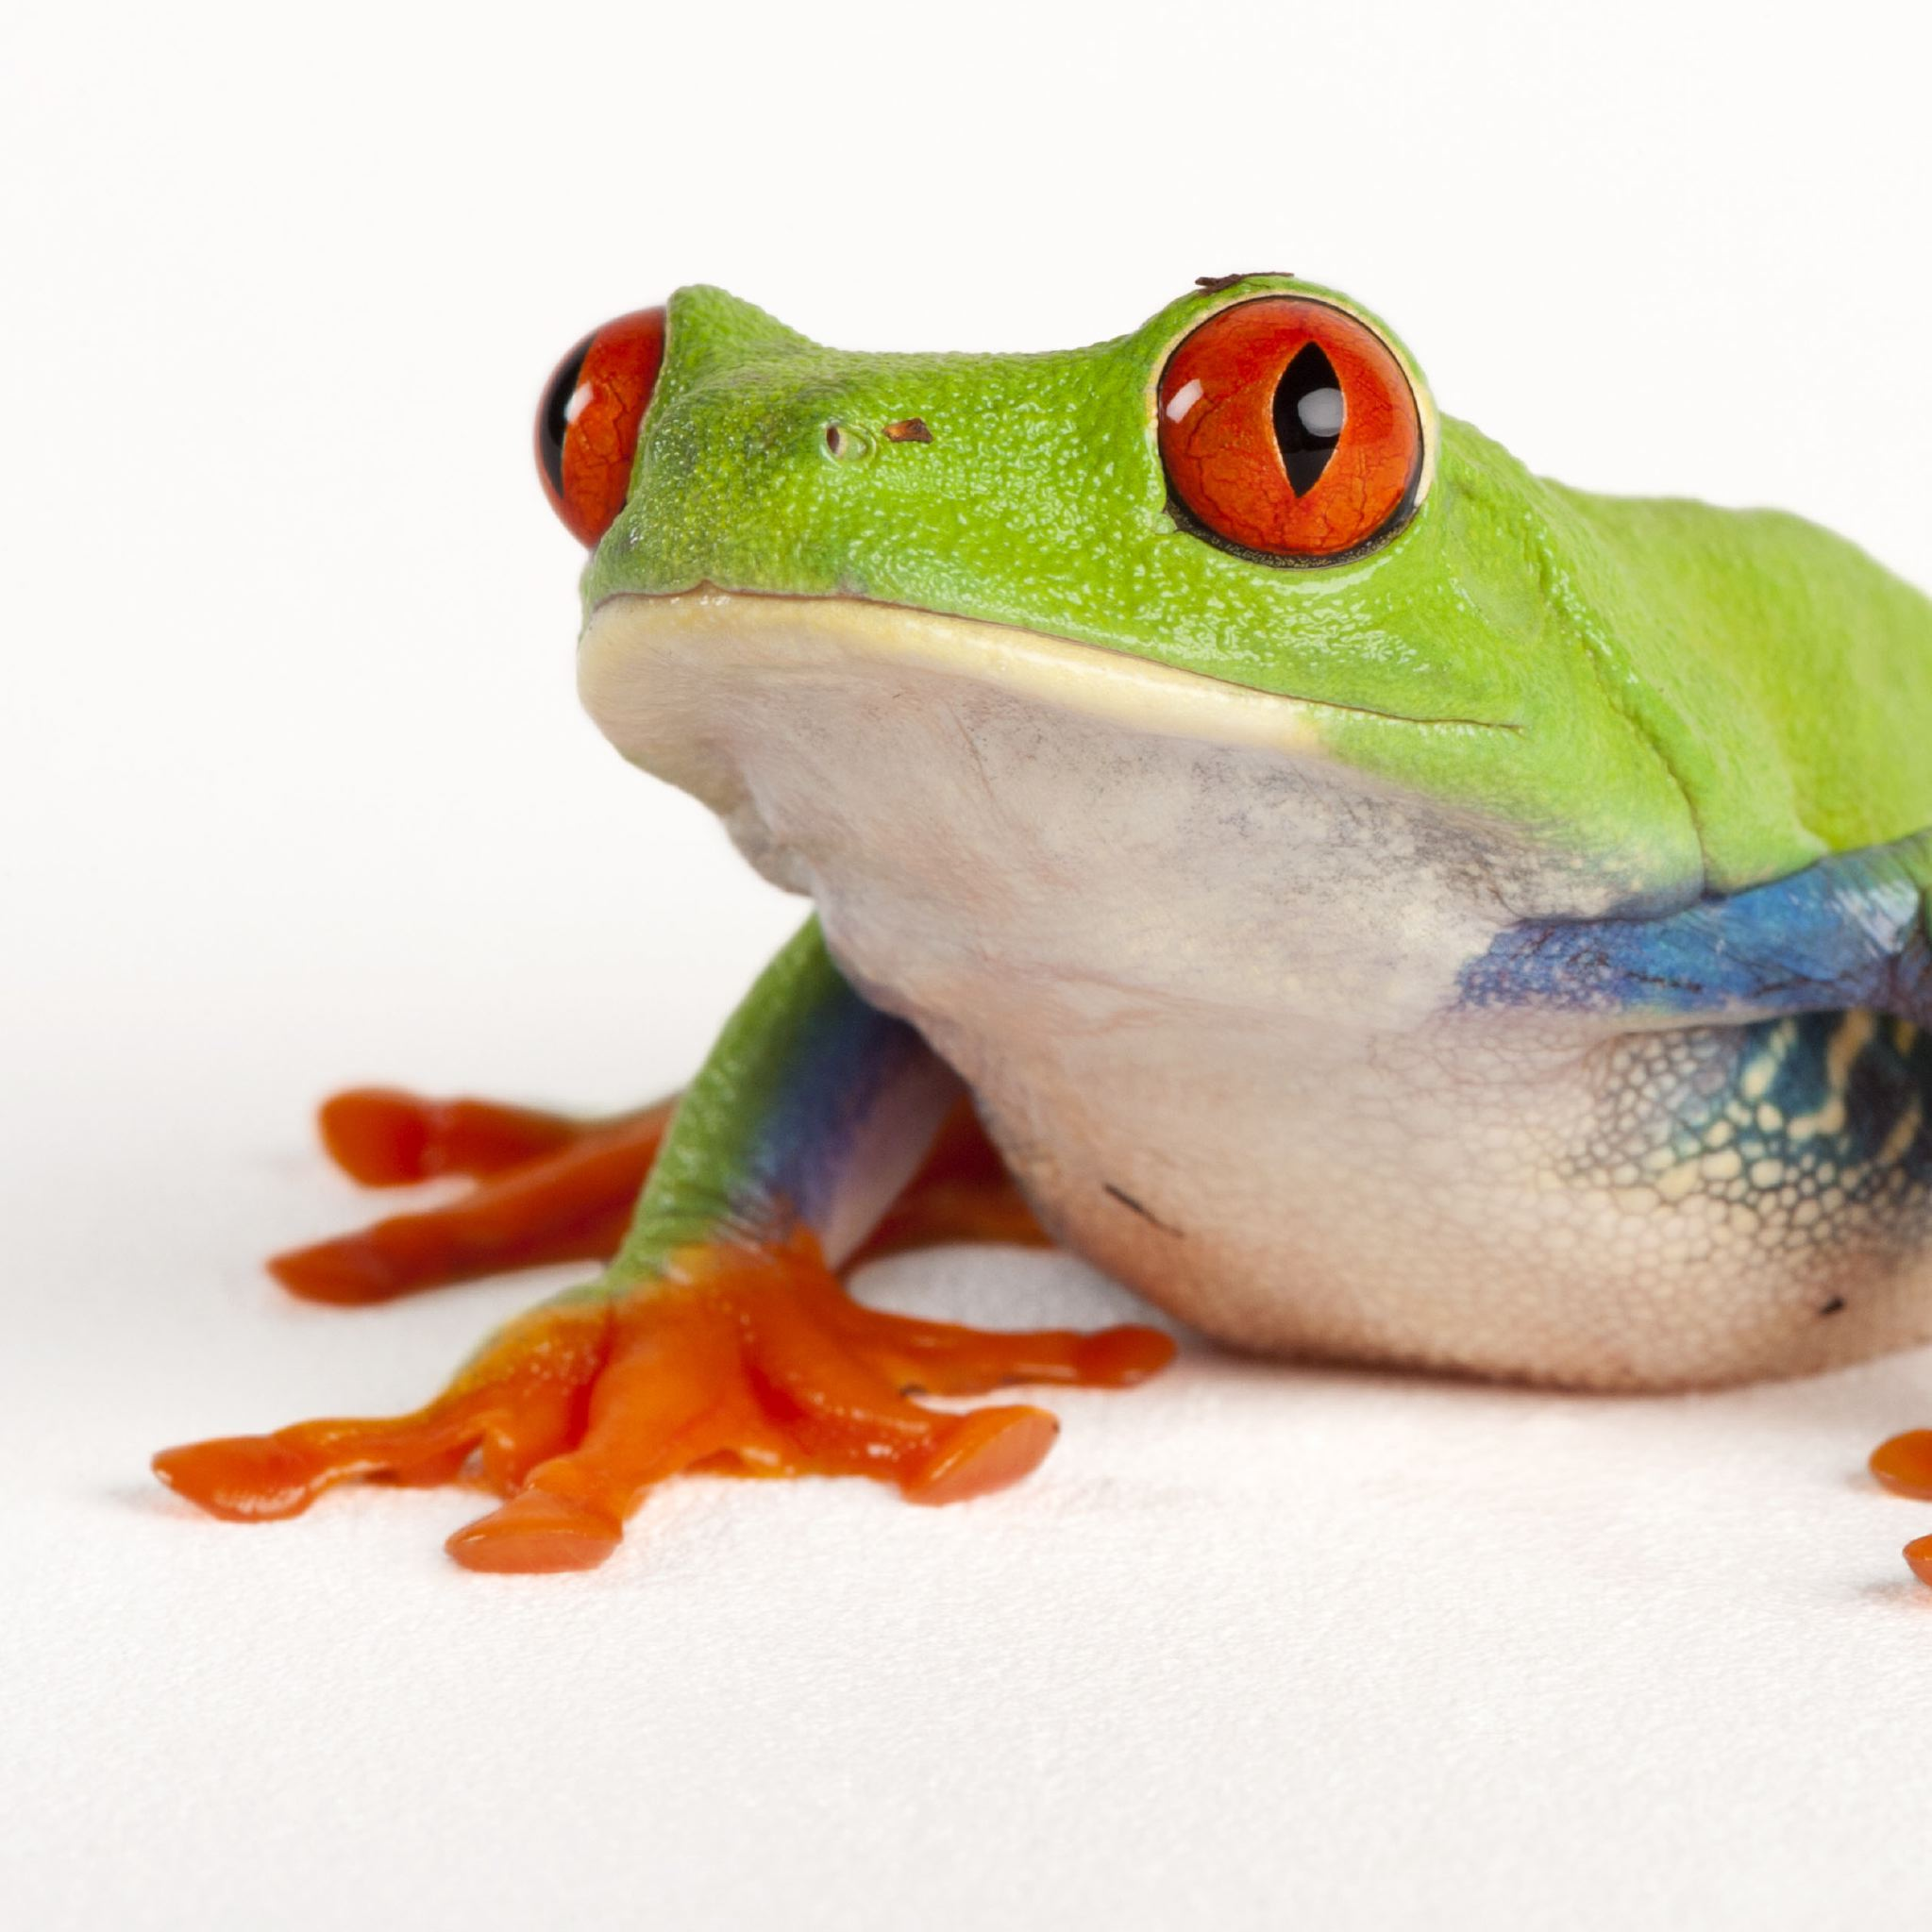 HQ Red Eyed Tree Frog Wallpapers | File 258.52Kb